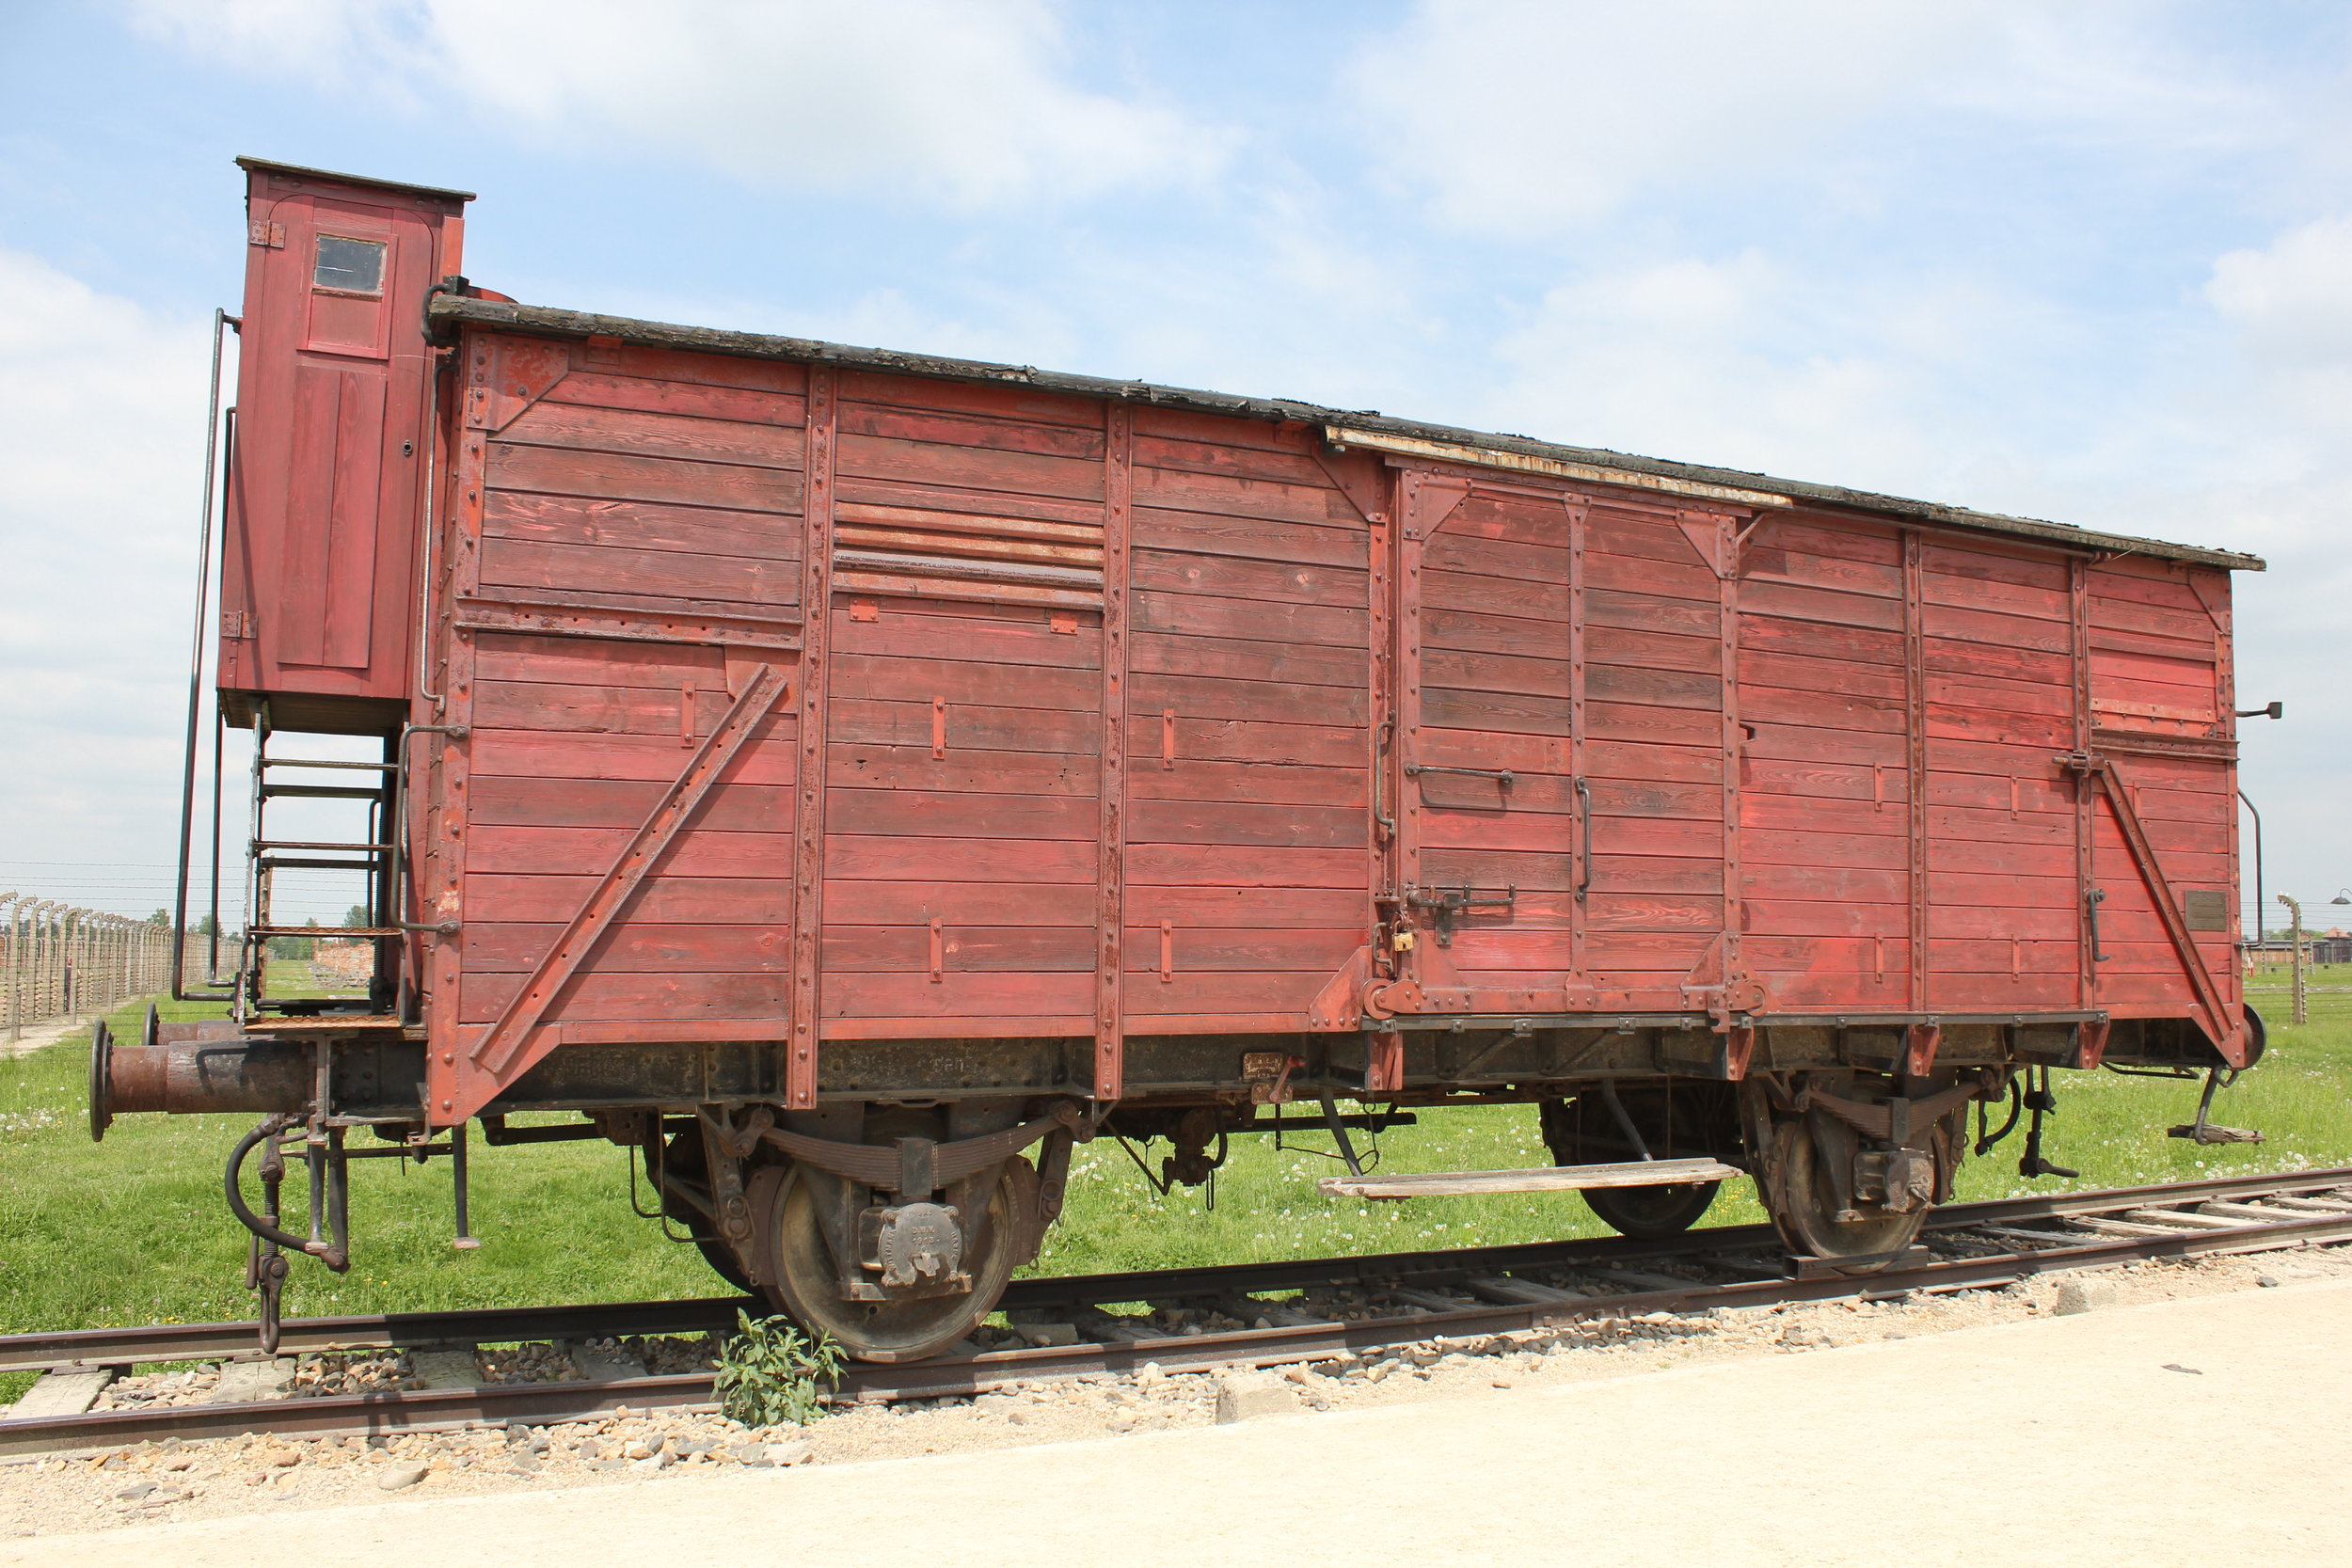 A typical train car that brought Jews to Auschwitz from all over Europe: Jews would be rounded up and packed into these train cars for several days with no food and no room to do anything but stand. The longest journey took 18 days and was made from Crete – upon arrival at Birkenau, everyone was already dead.